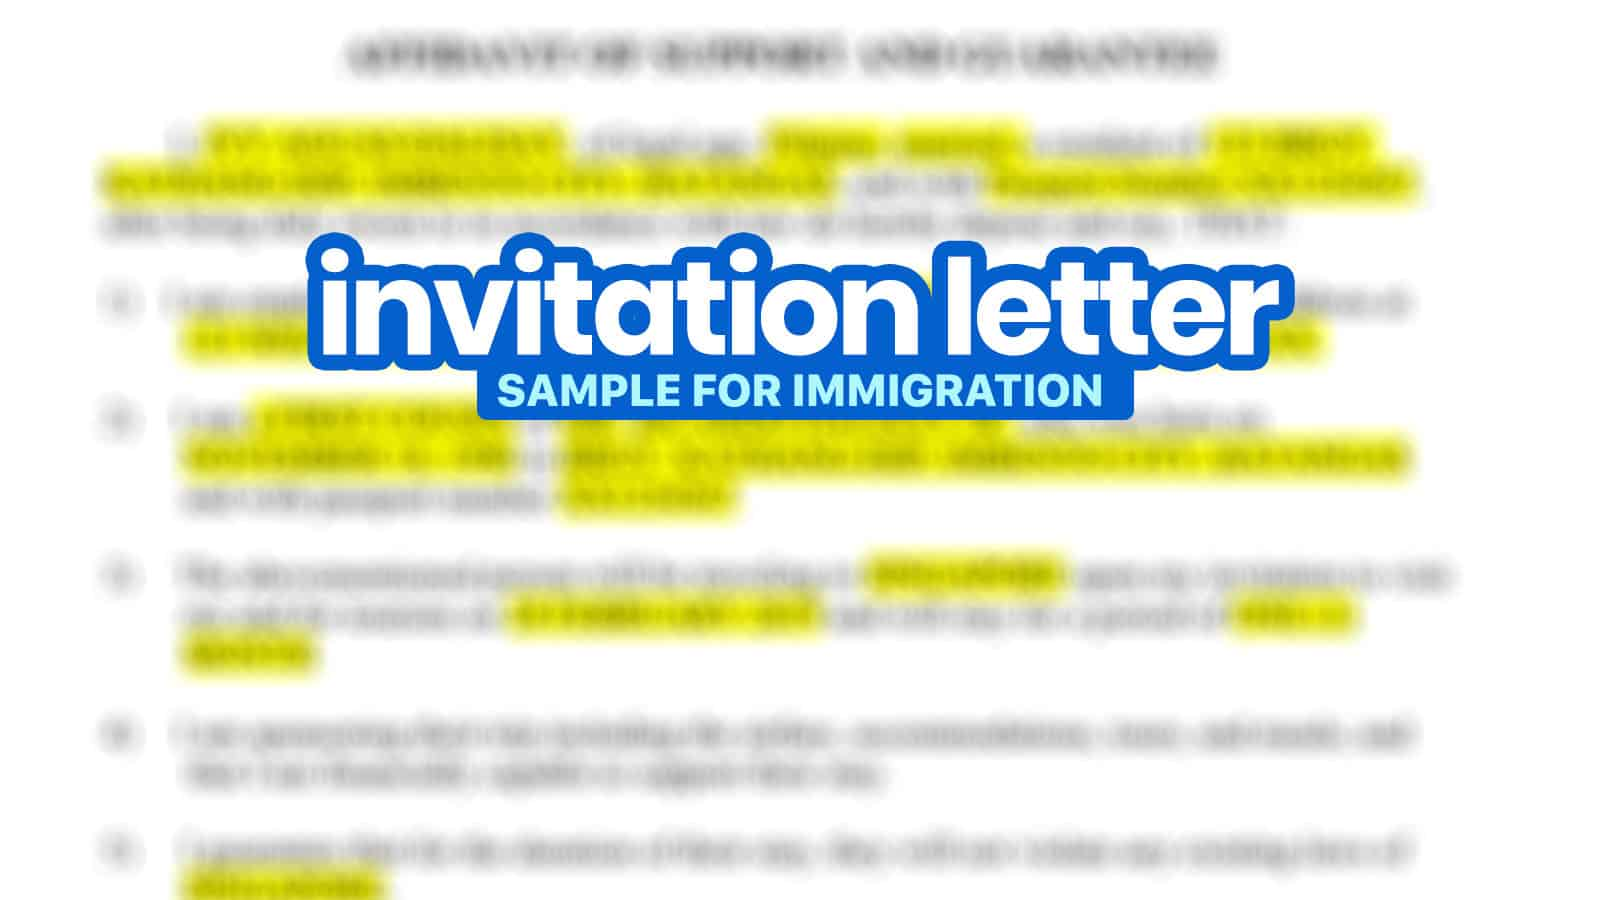 A Letter To Immigration Officer Sample from www.thepoortraveler.net